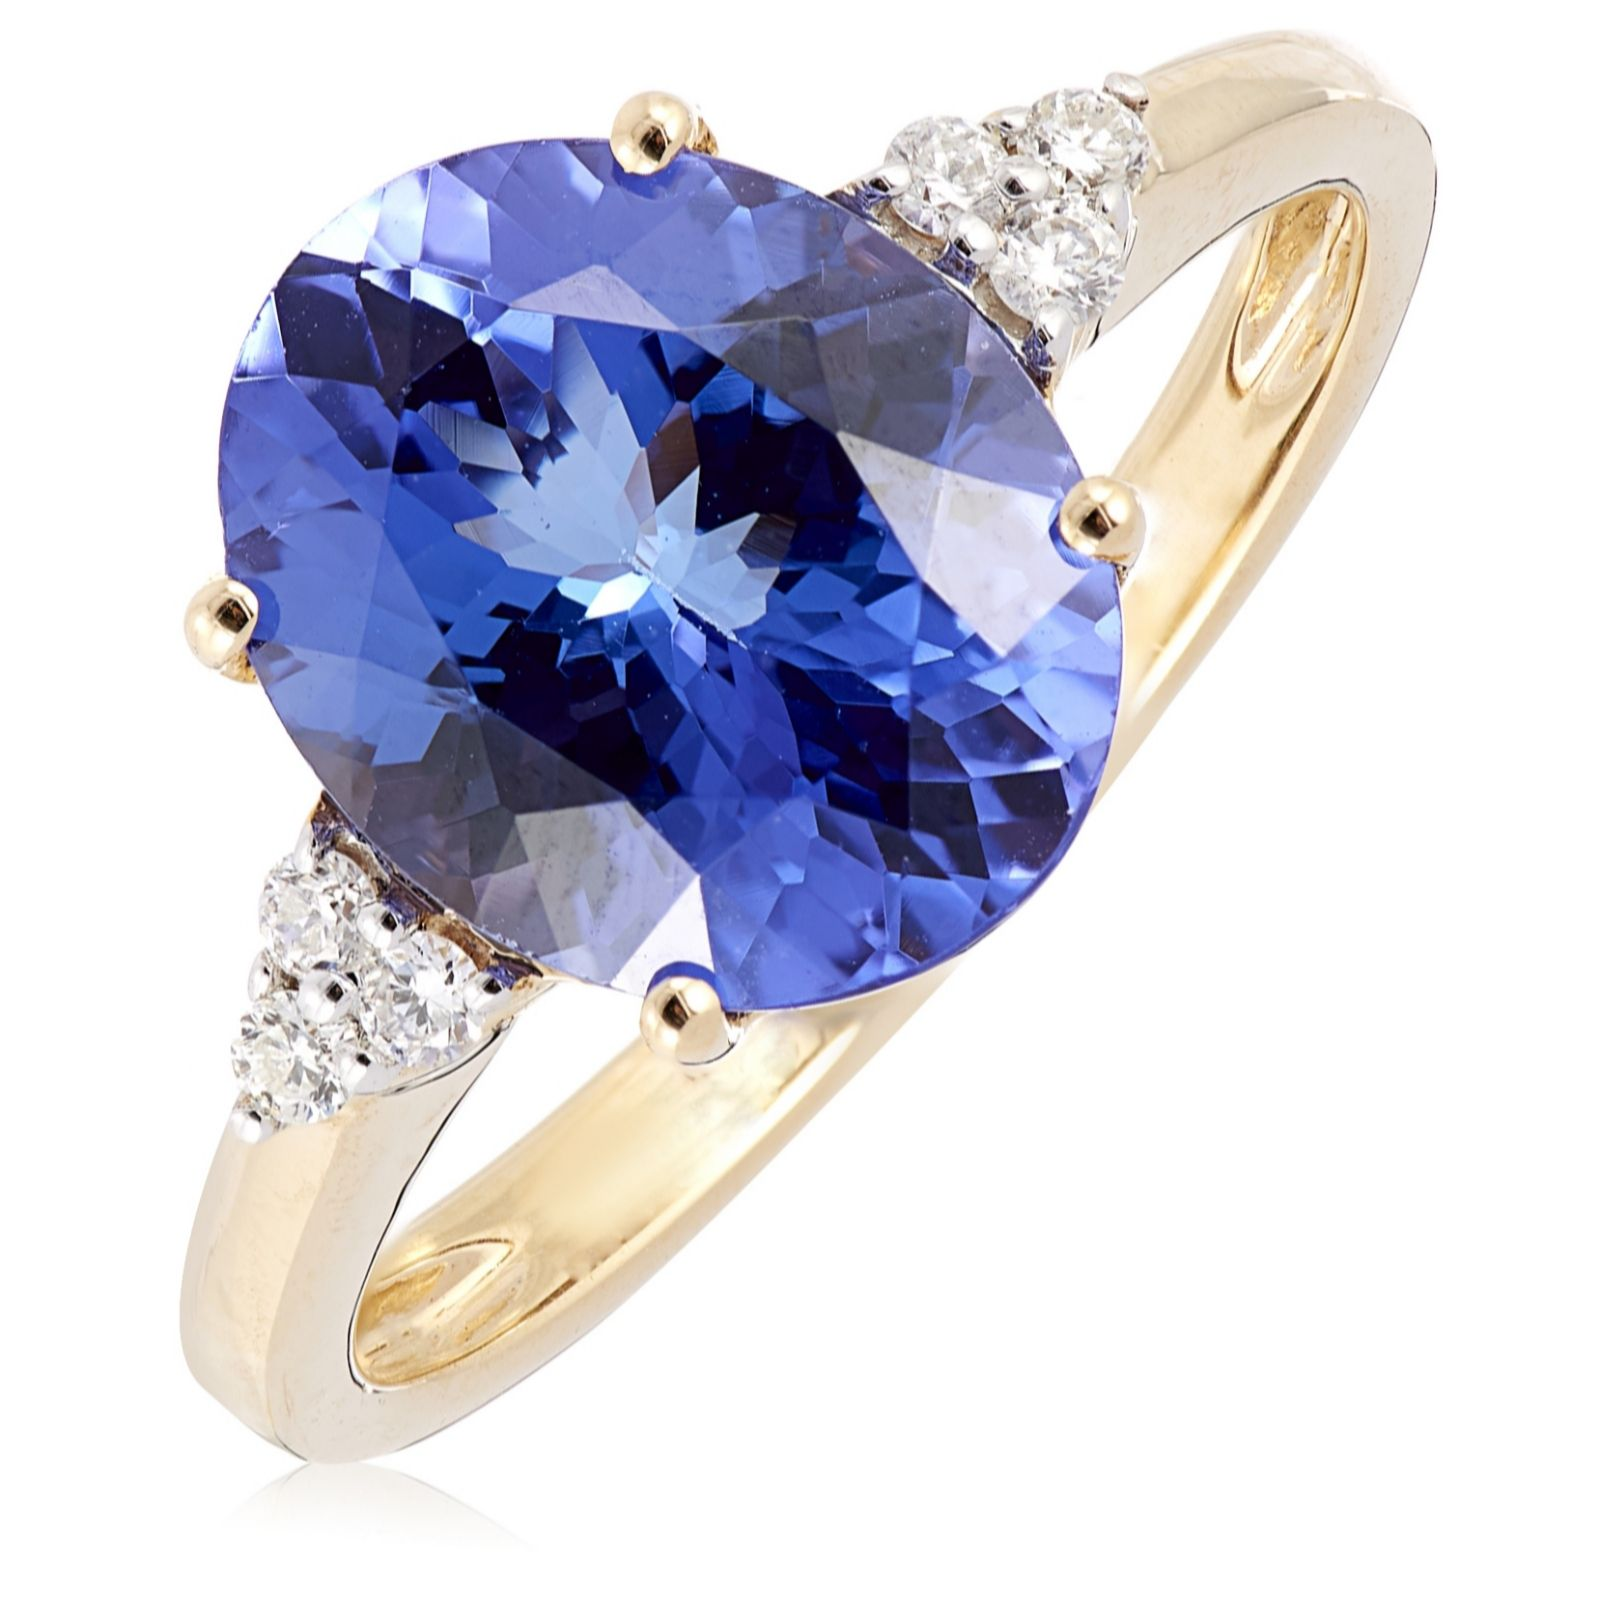 b153067cad5fe 3.25ct AAAA Tanzanite & Diamond Accent Oval Solitaire Ring 18ct Gold - QVC  UK